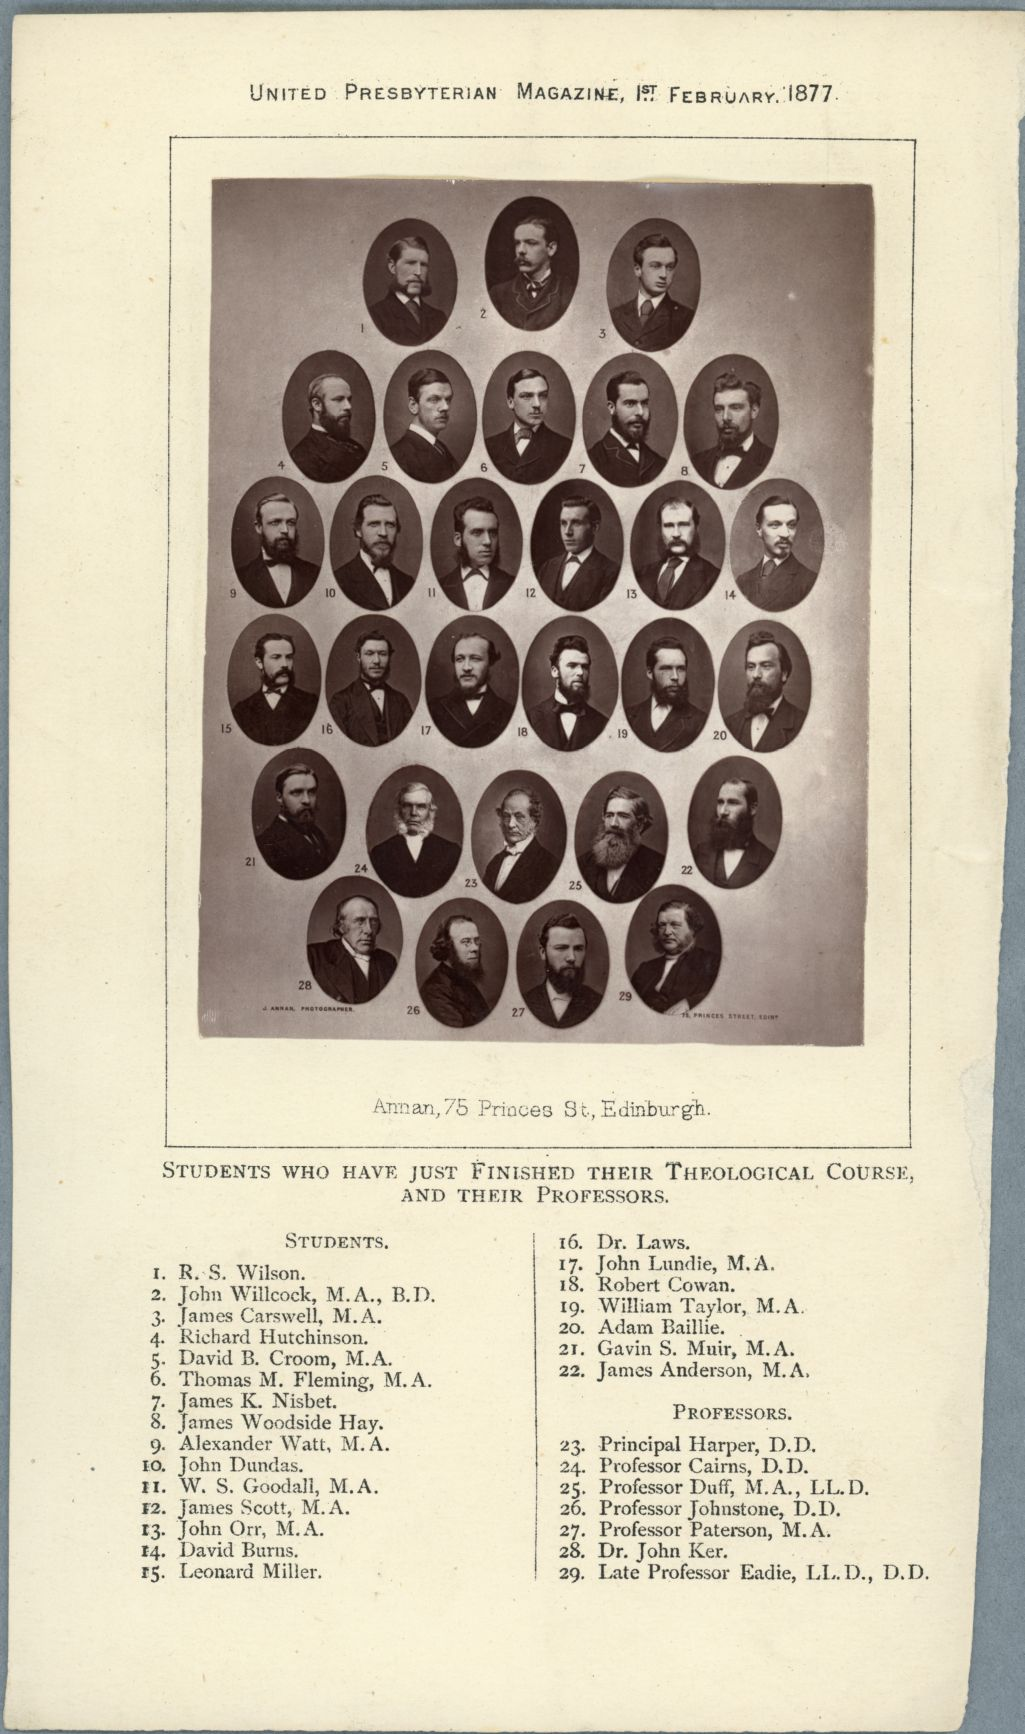 Theology Students and Professors in the United Presbyterian Magazine 1877